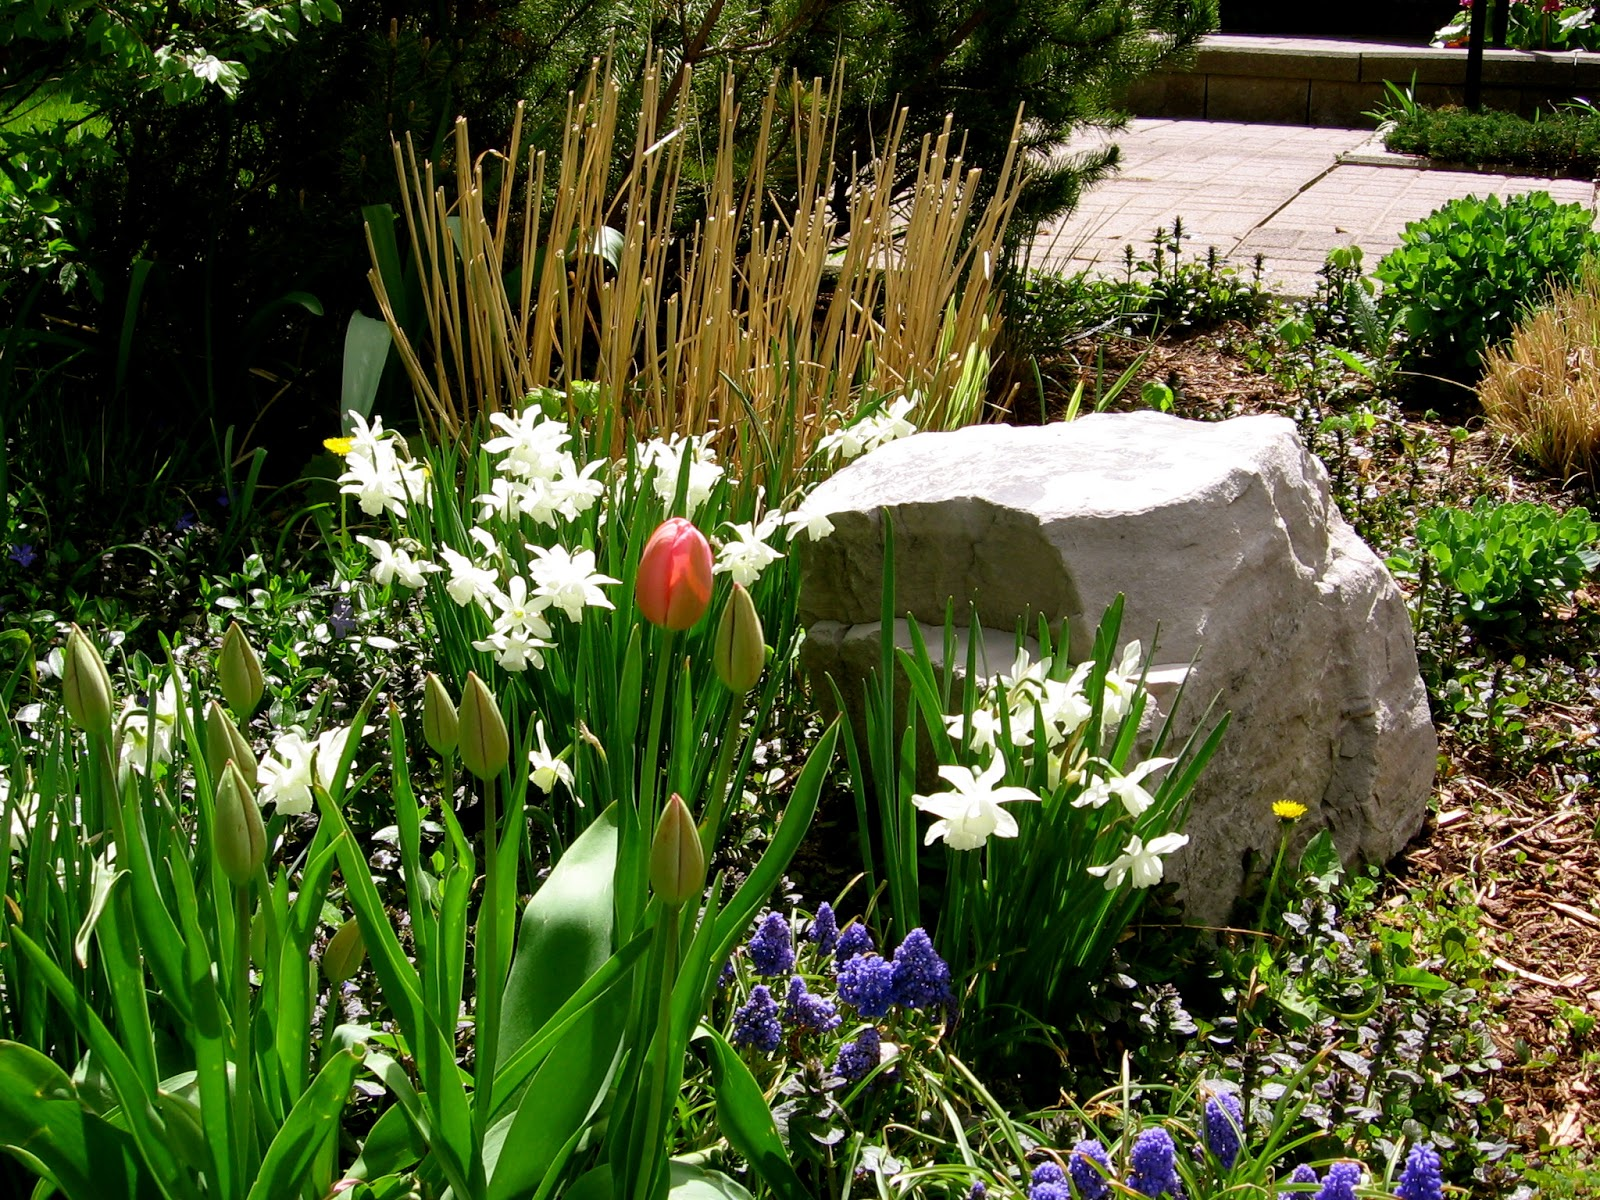 1000 images about st francis on pinterest shade garden for Spring bulb garden designs